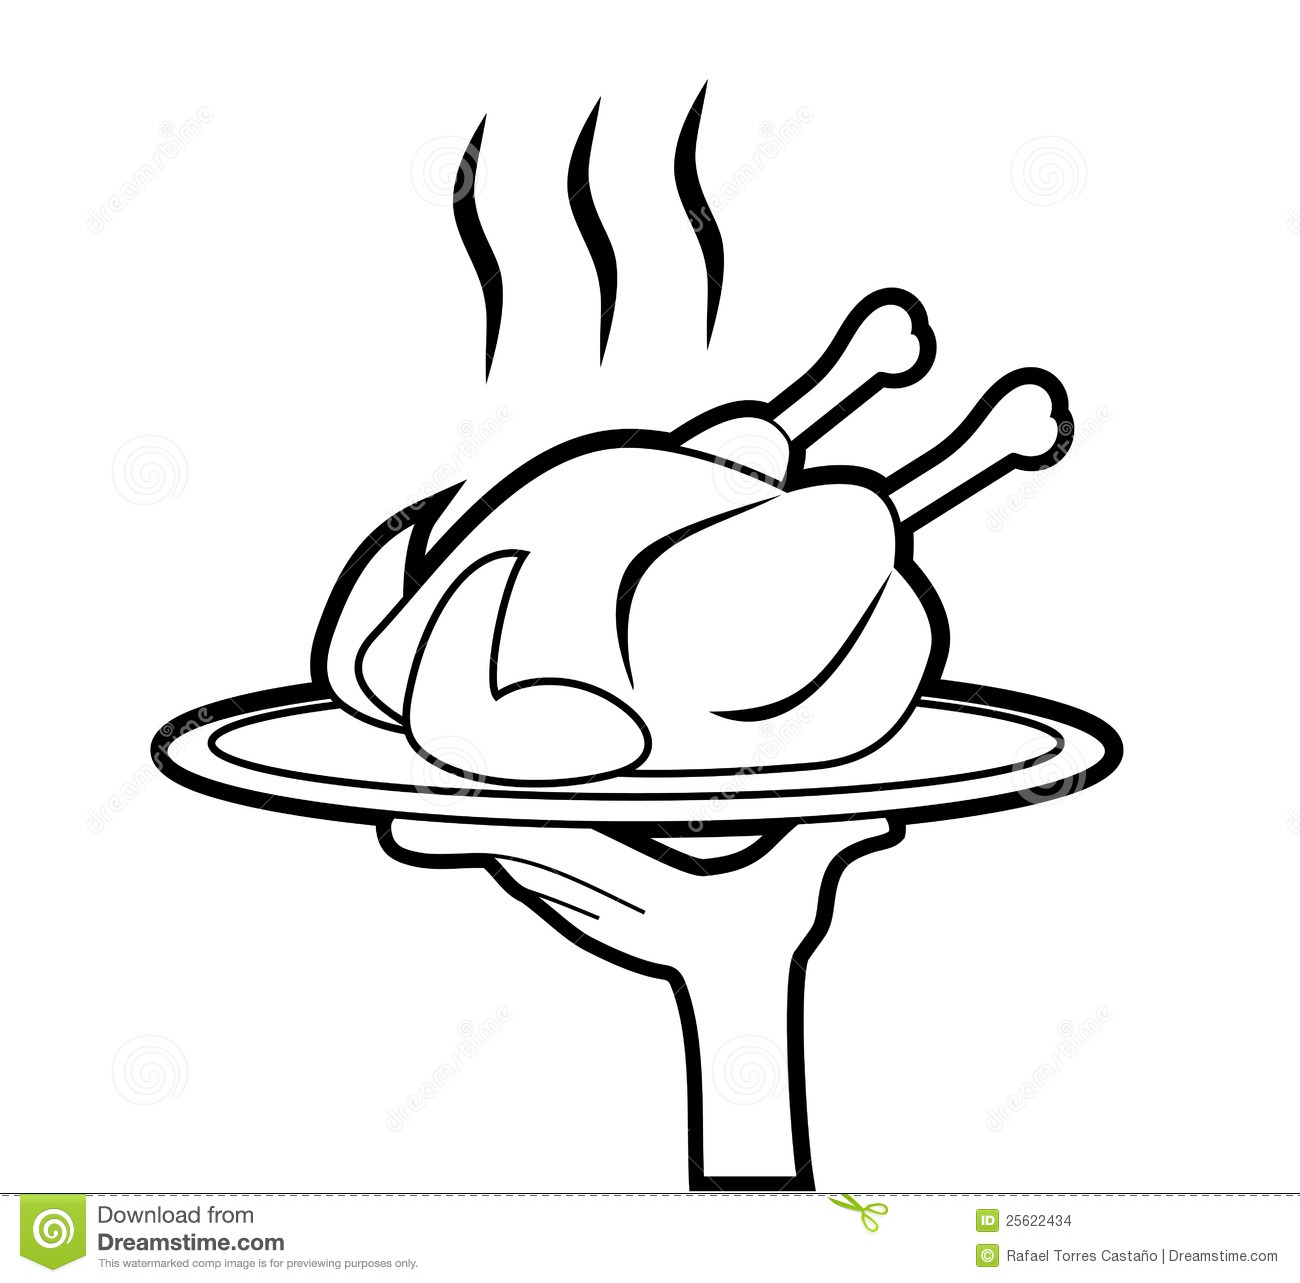 Illustration clipart chicken A plate Illustrations Wing Hot